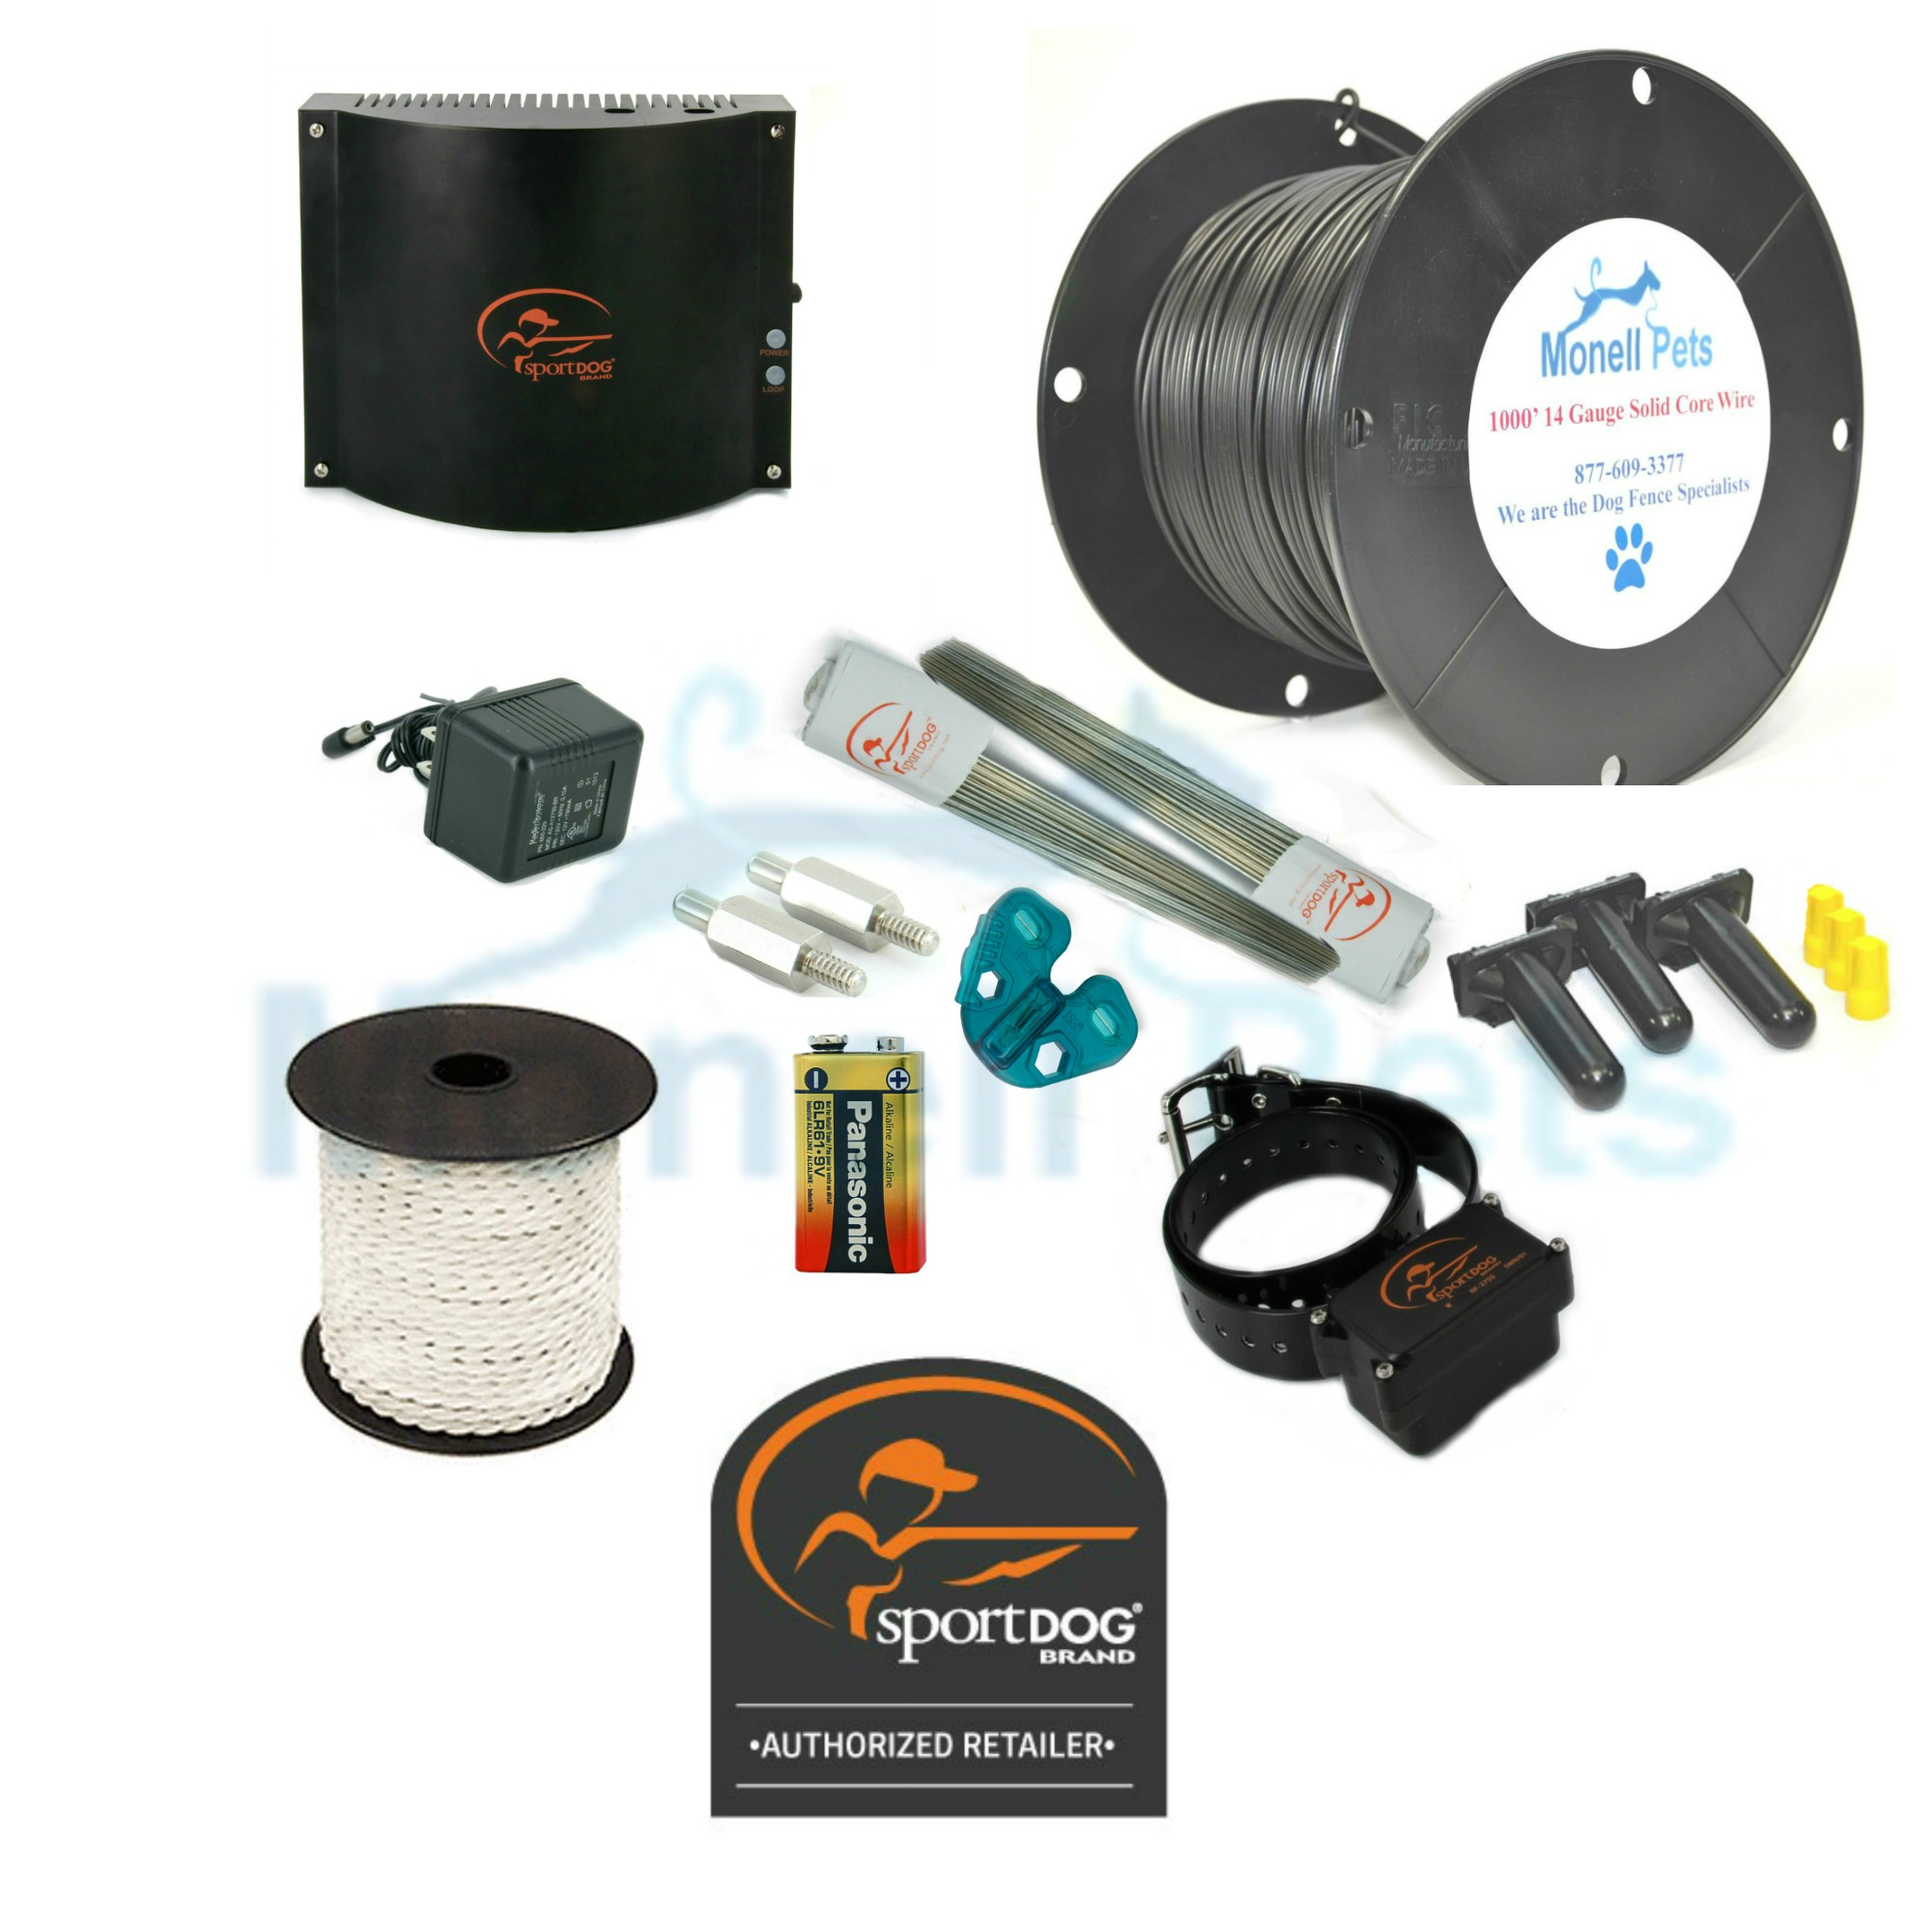 SportDOG In-Ground Electric Dog Fence System SDF-100A 14 Gauge Wire ...